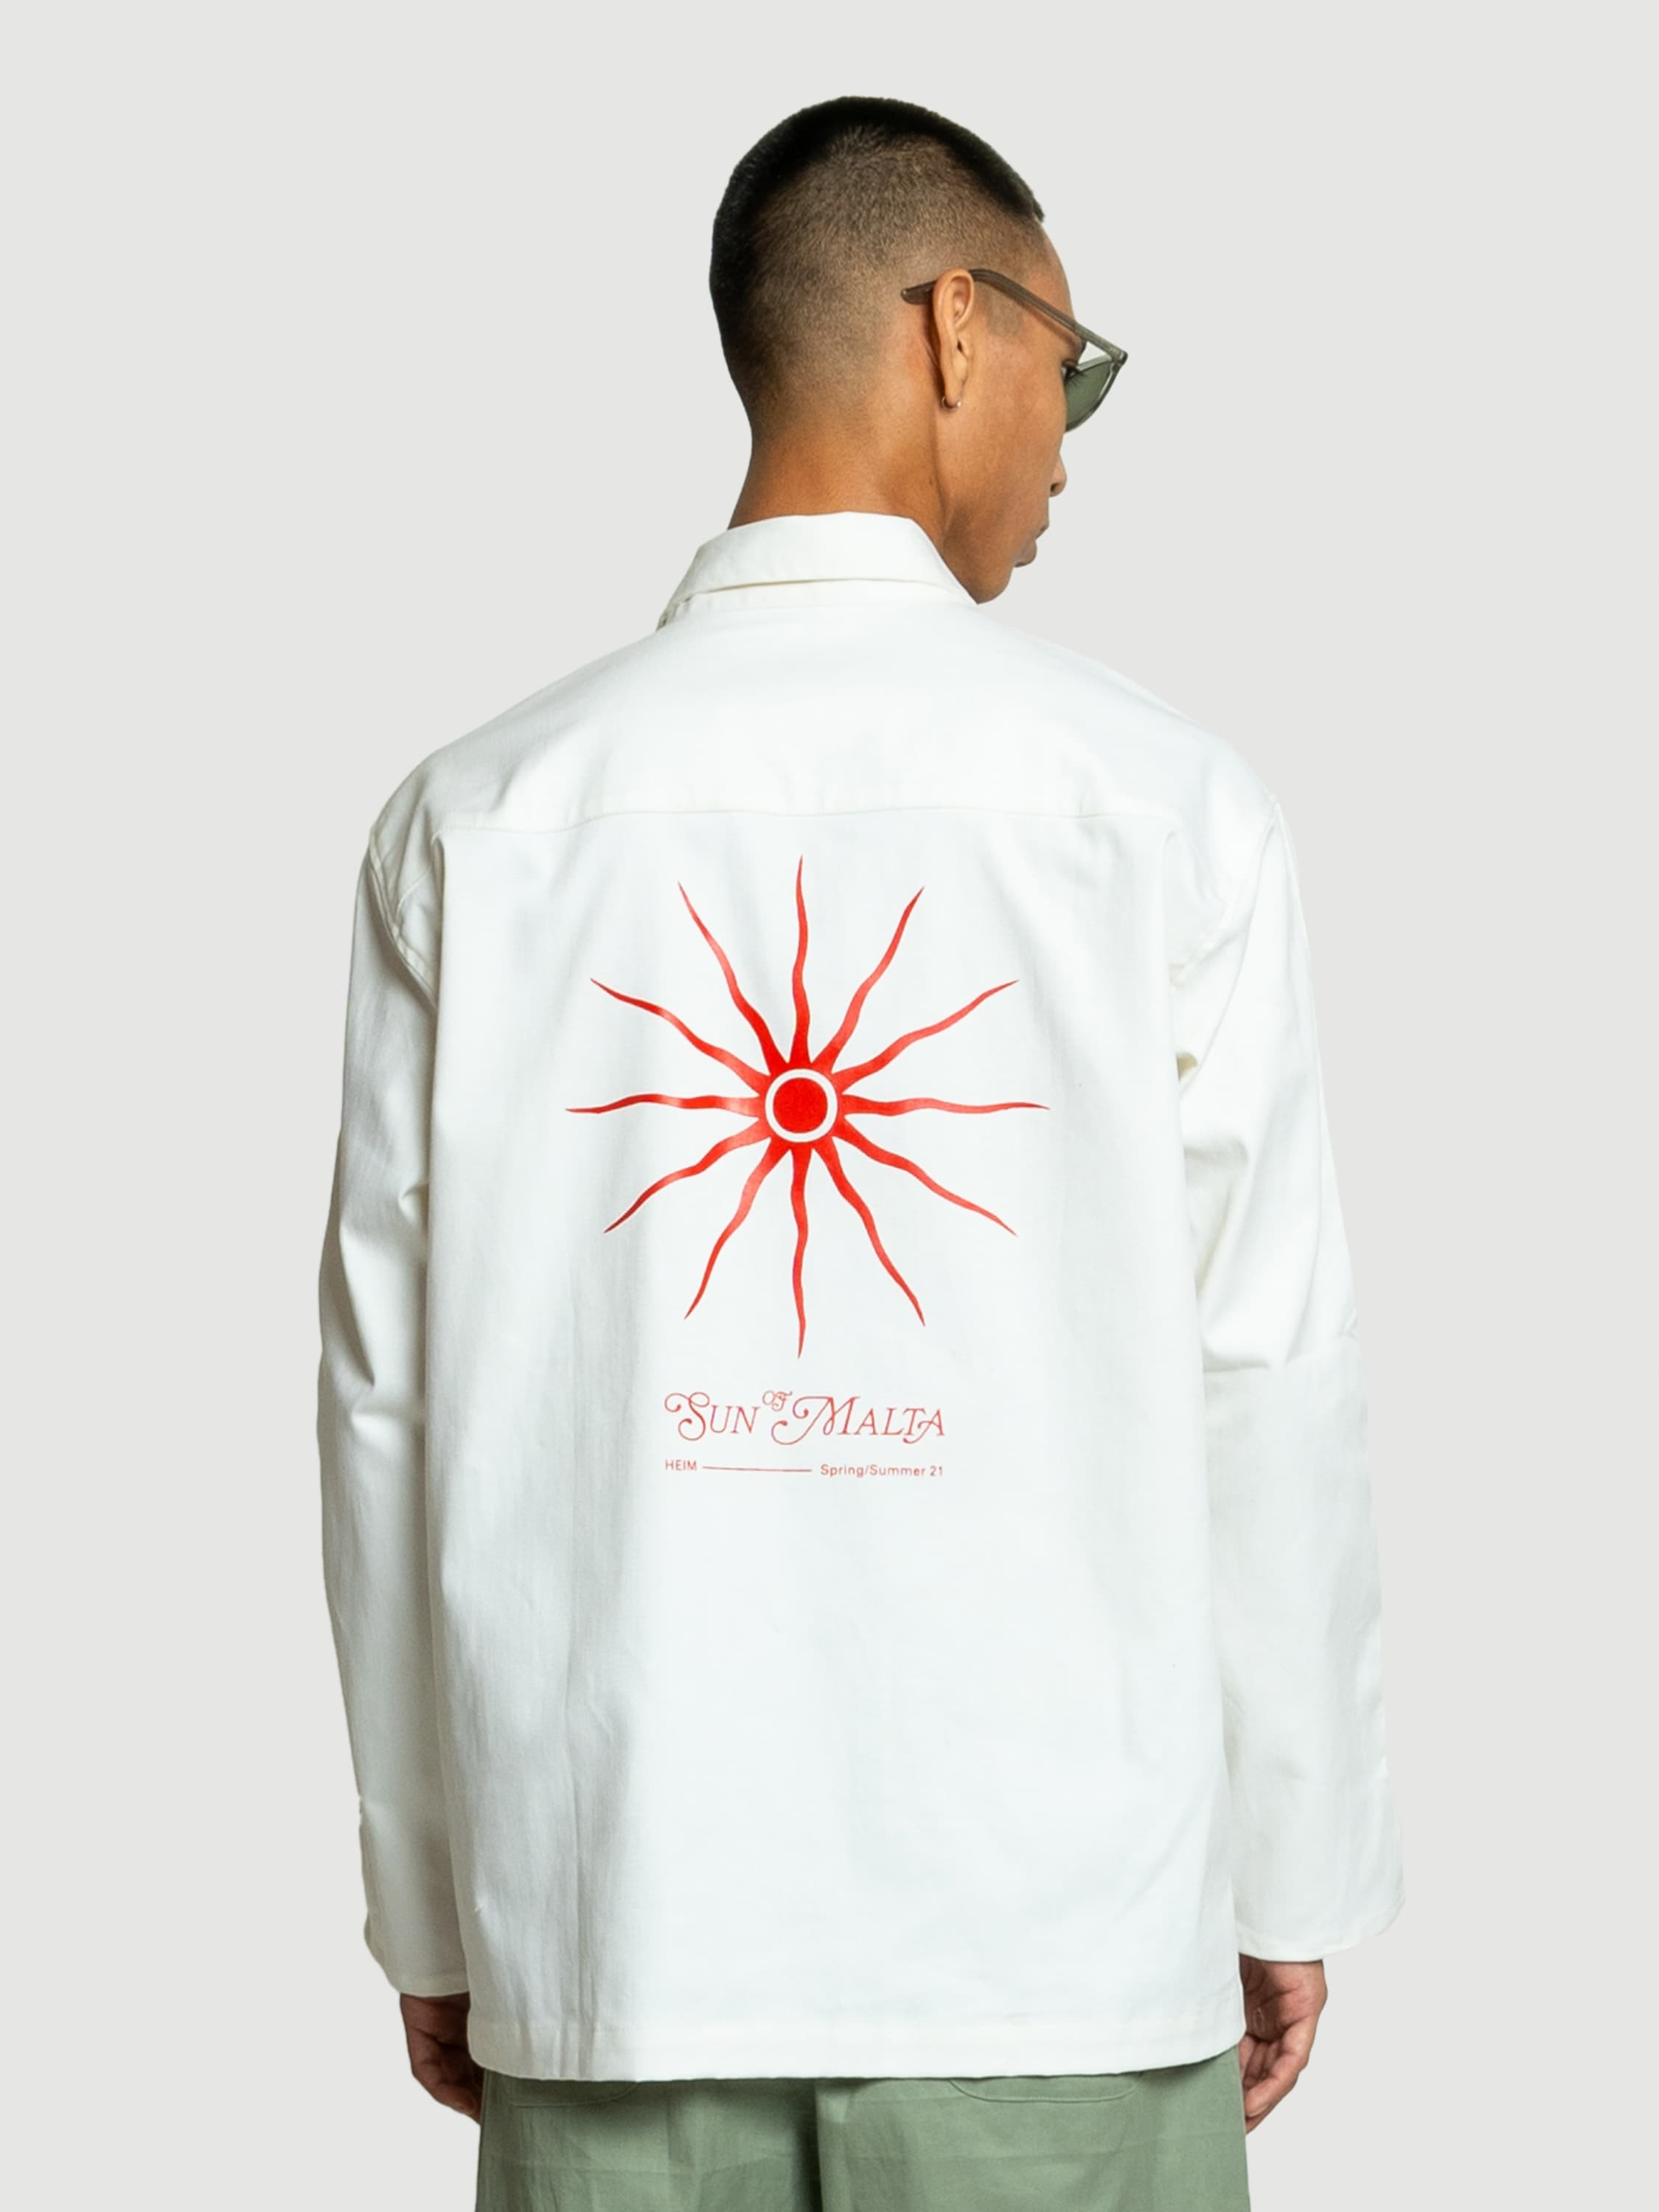 Sun of Malta White Jacket